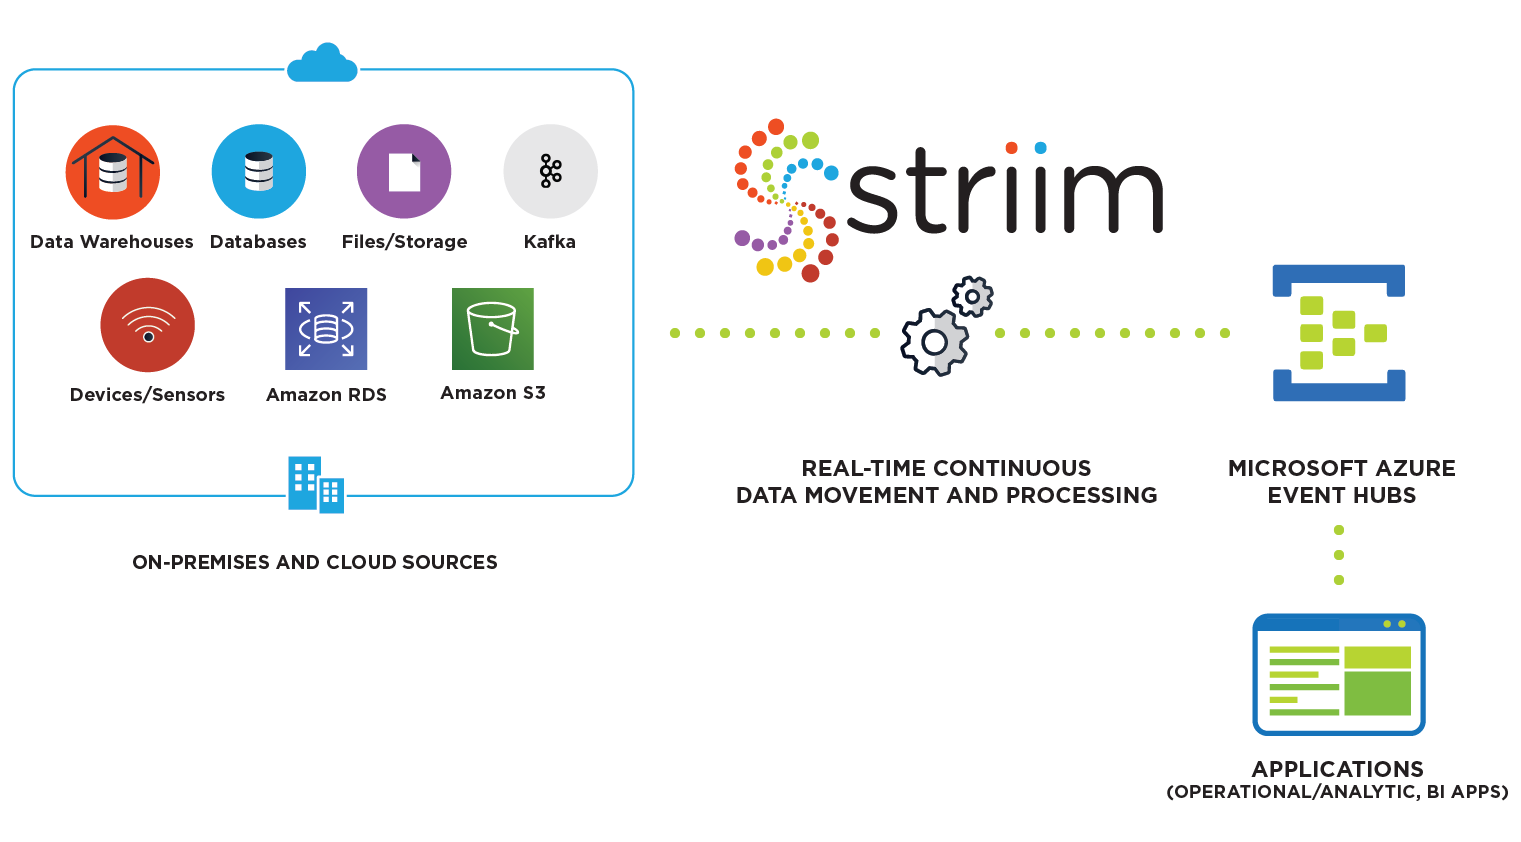 Striim for Azure Event Hubs